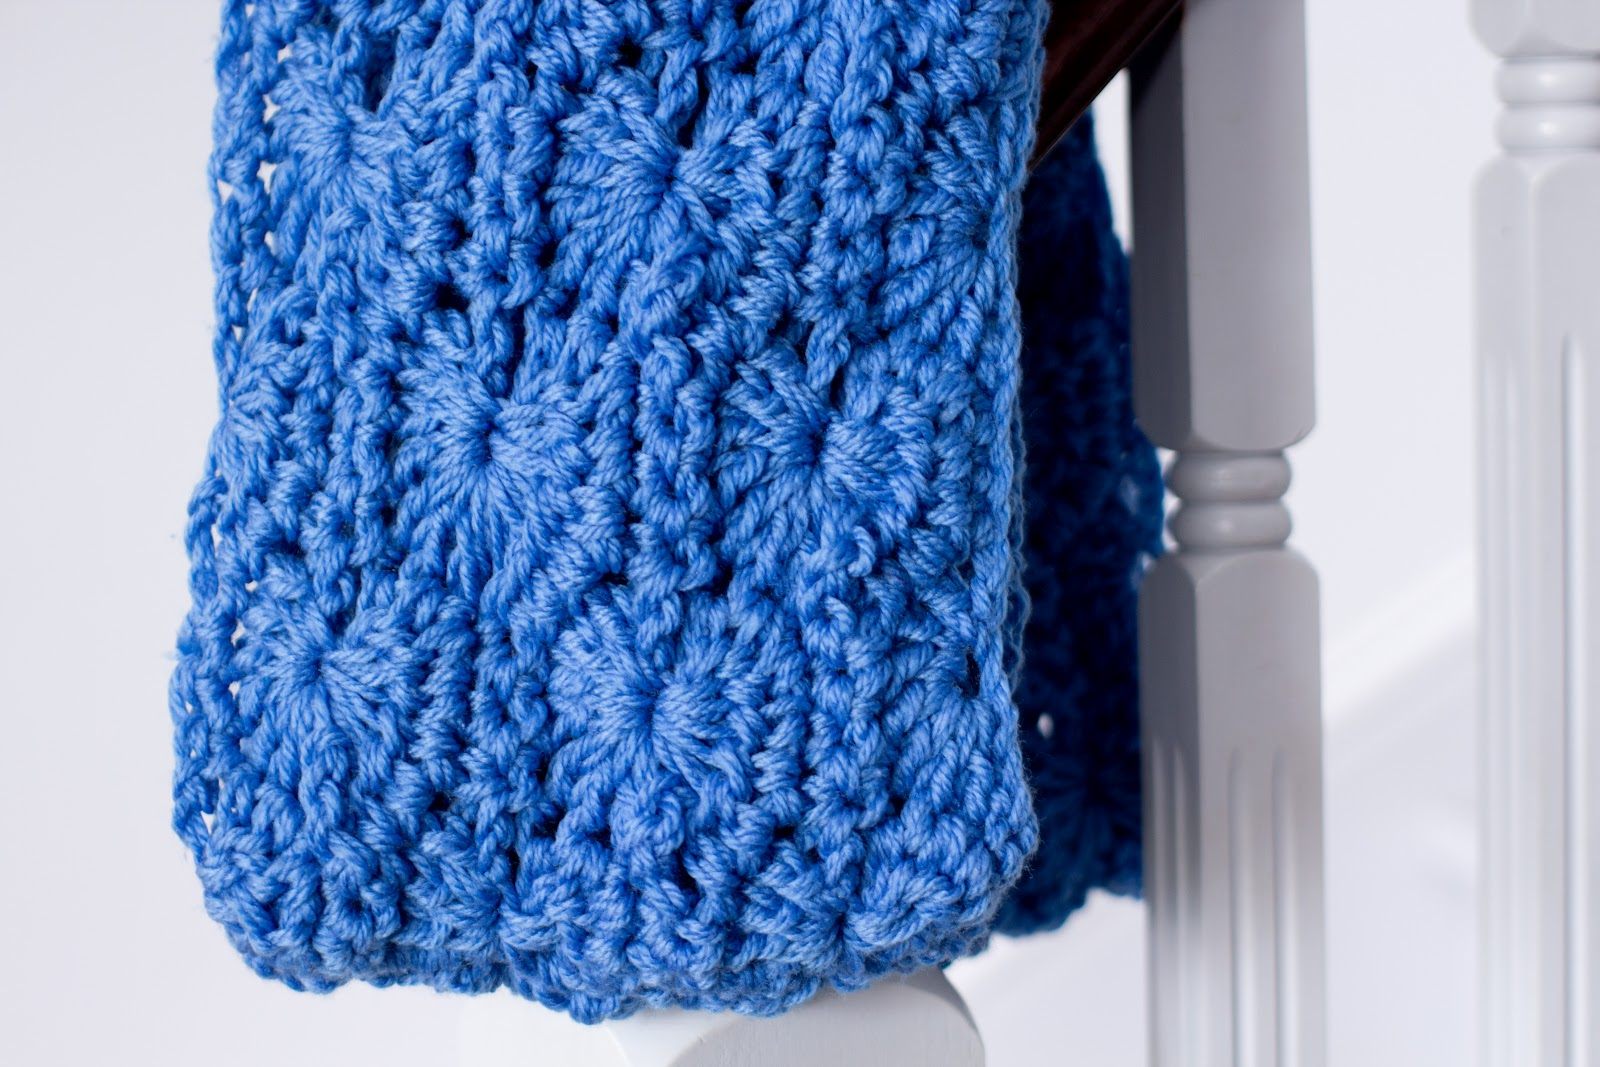 ... Craft, Crochet, Create: A Unique Gift ~ Infinity Scarf Crochet Pattern